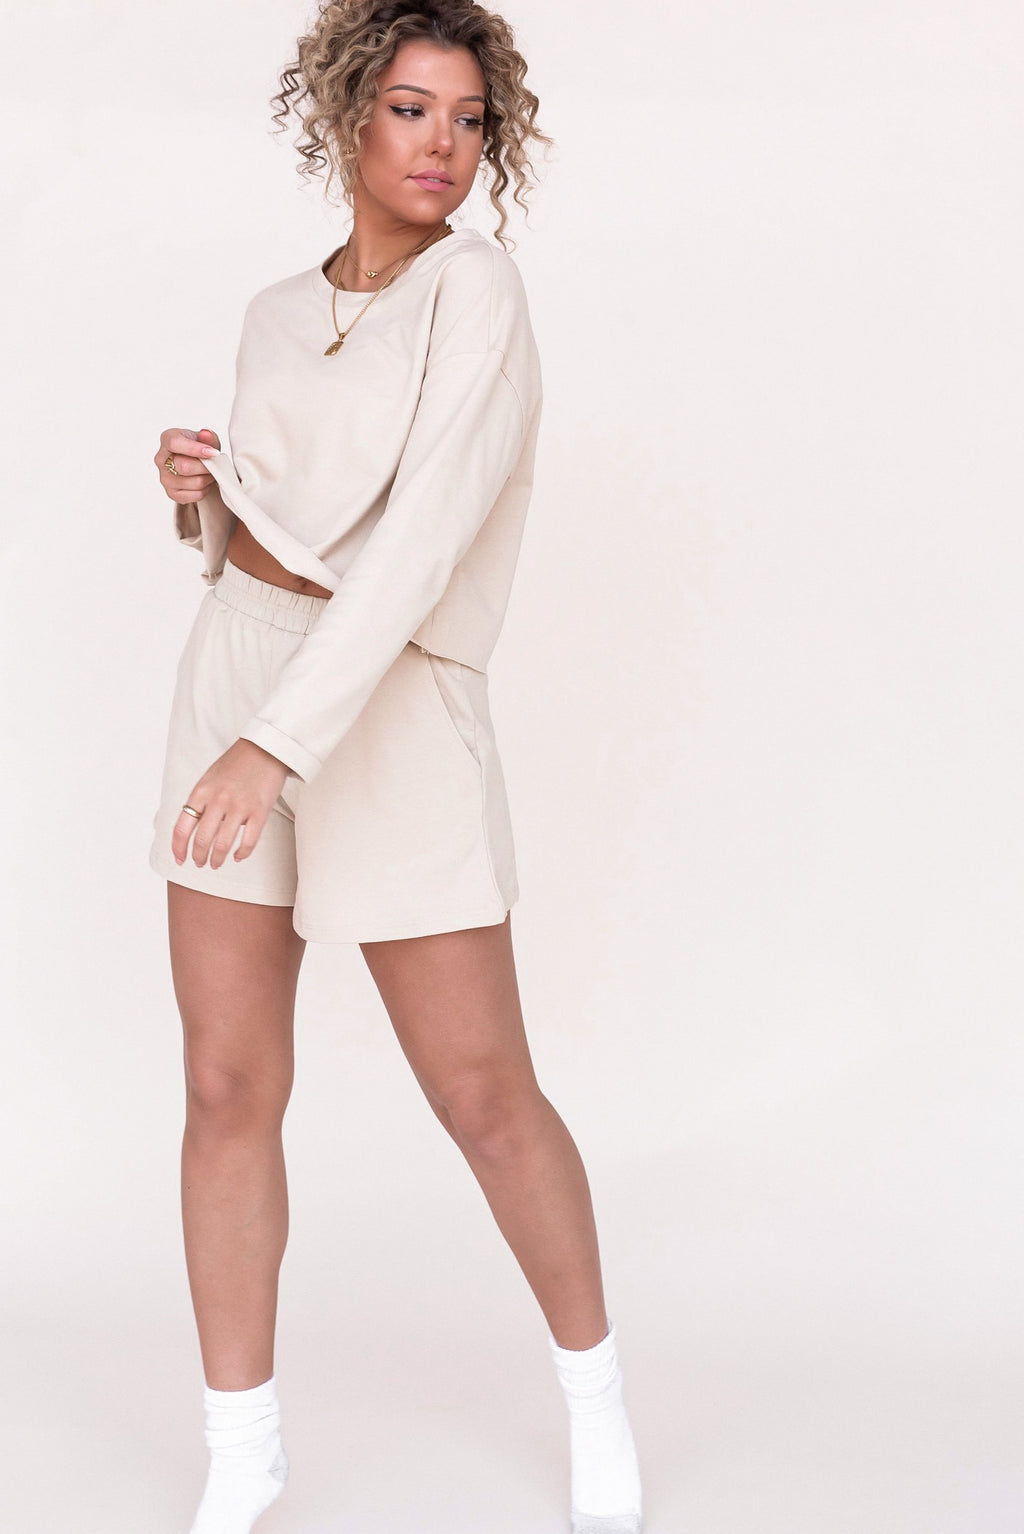 Madison Cotton Lounge Top and Shorts Set - LLACIE